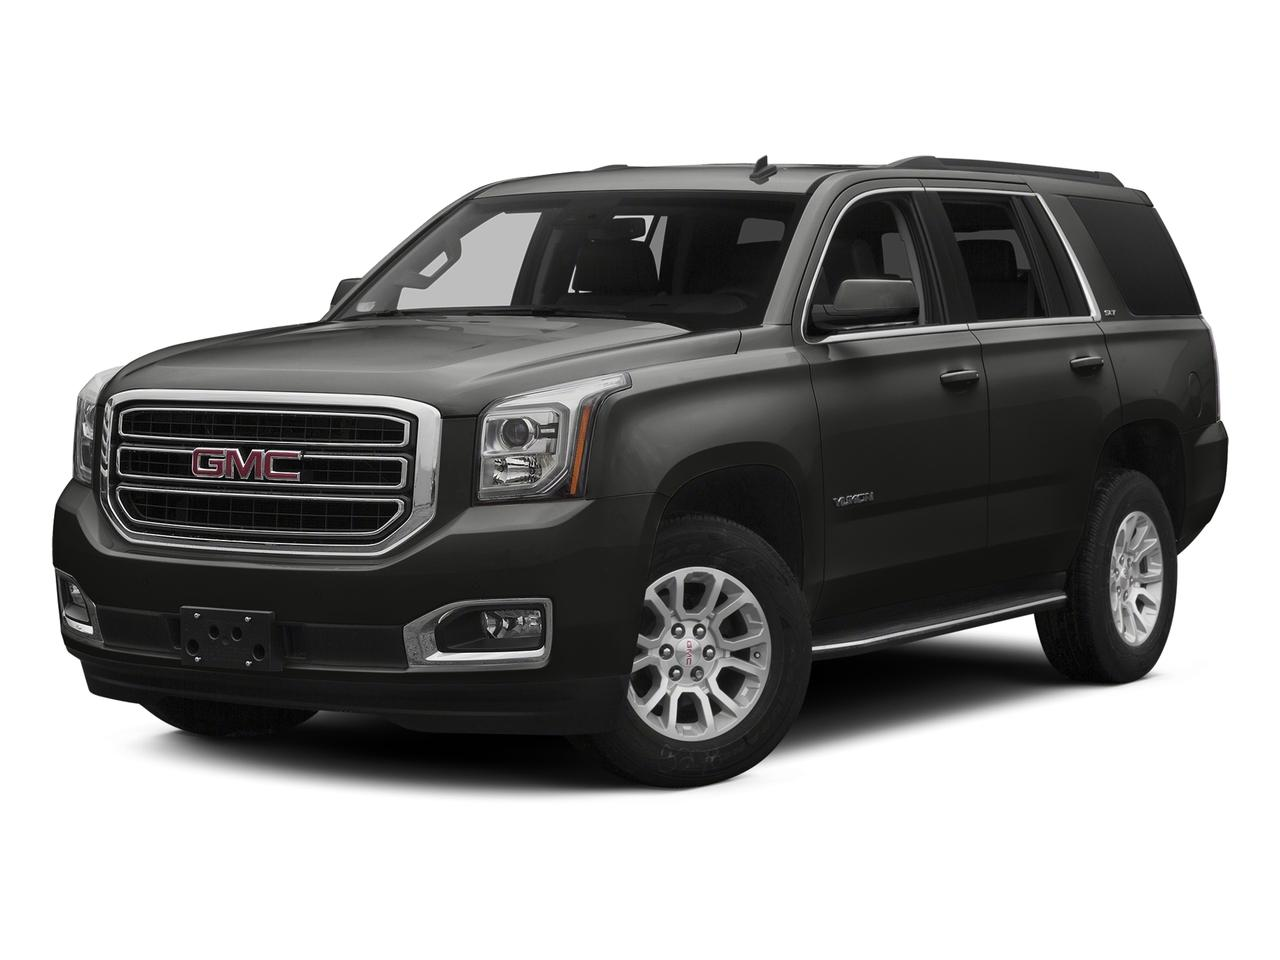 2016 GMC Yukon Vehicle Photo in Ocala, FL 34474